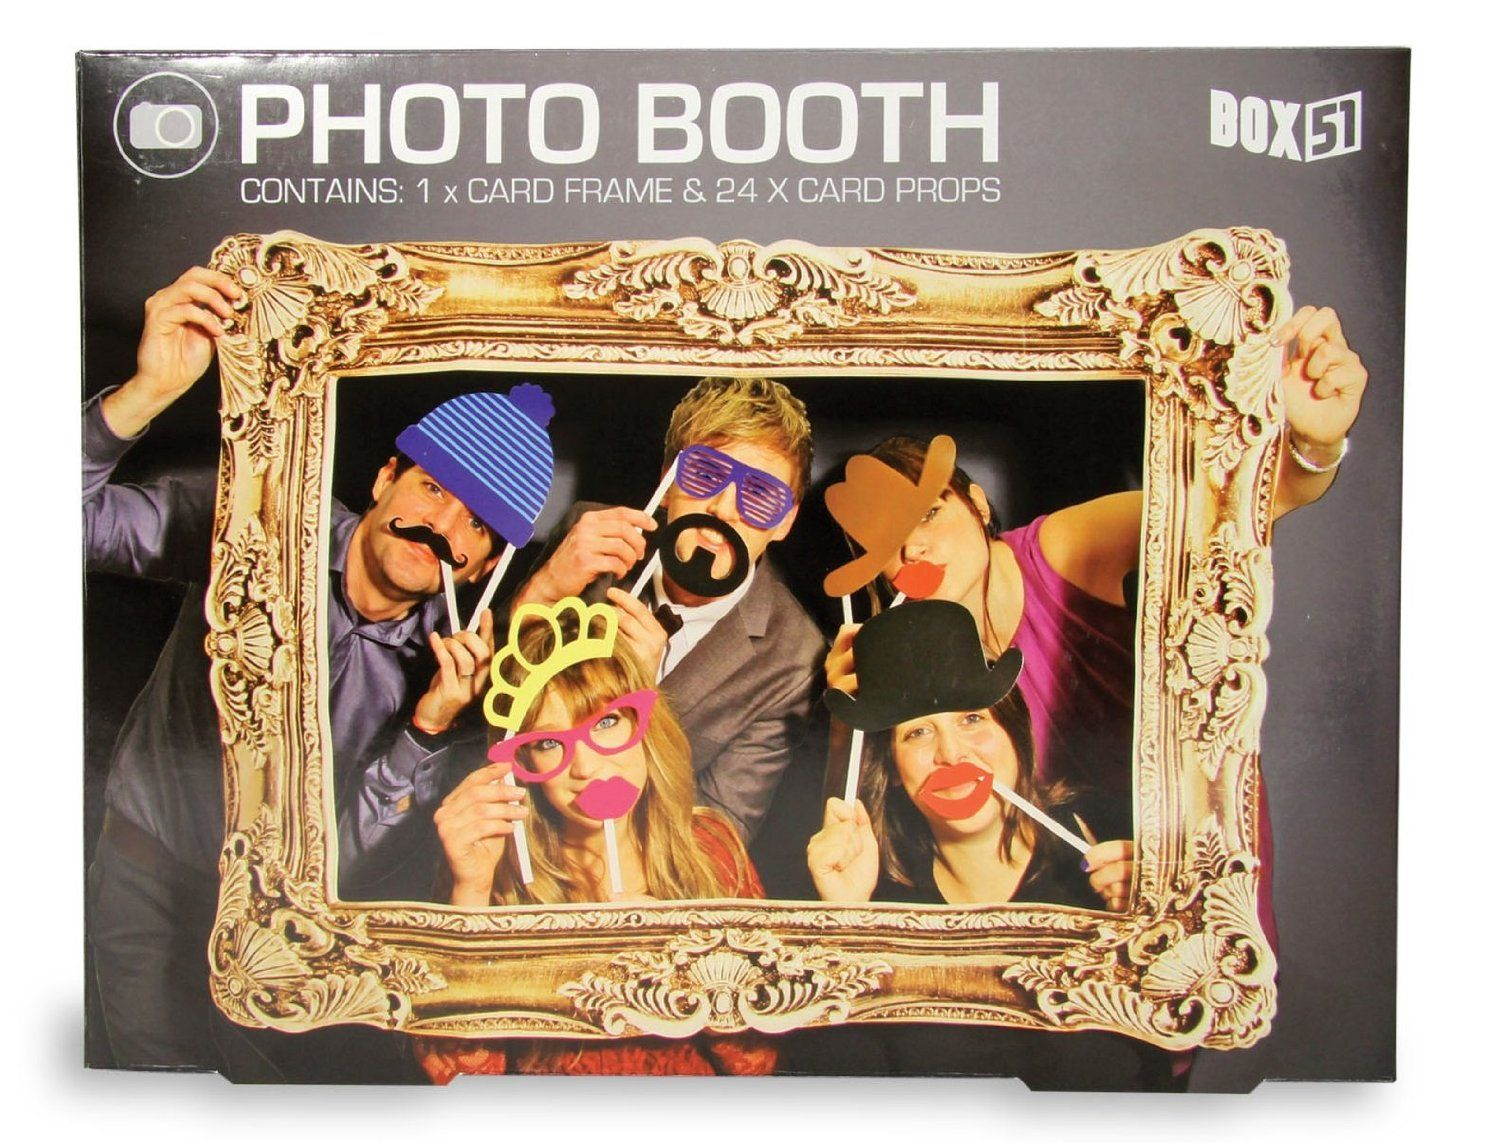 Box 51 Photo Booth: Amazon.co.uk: Toys & Games